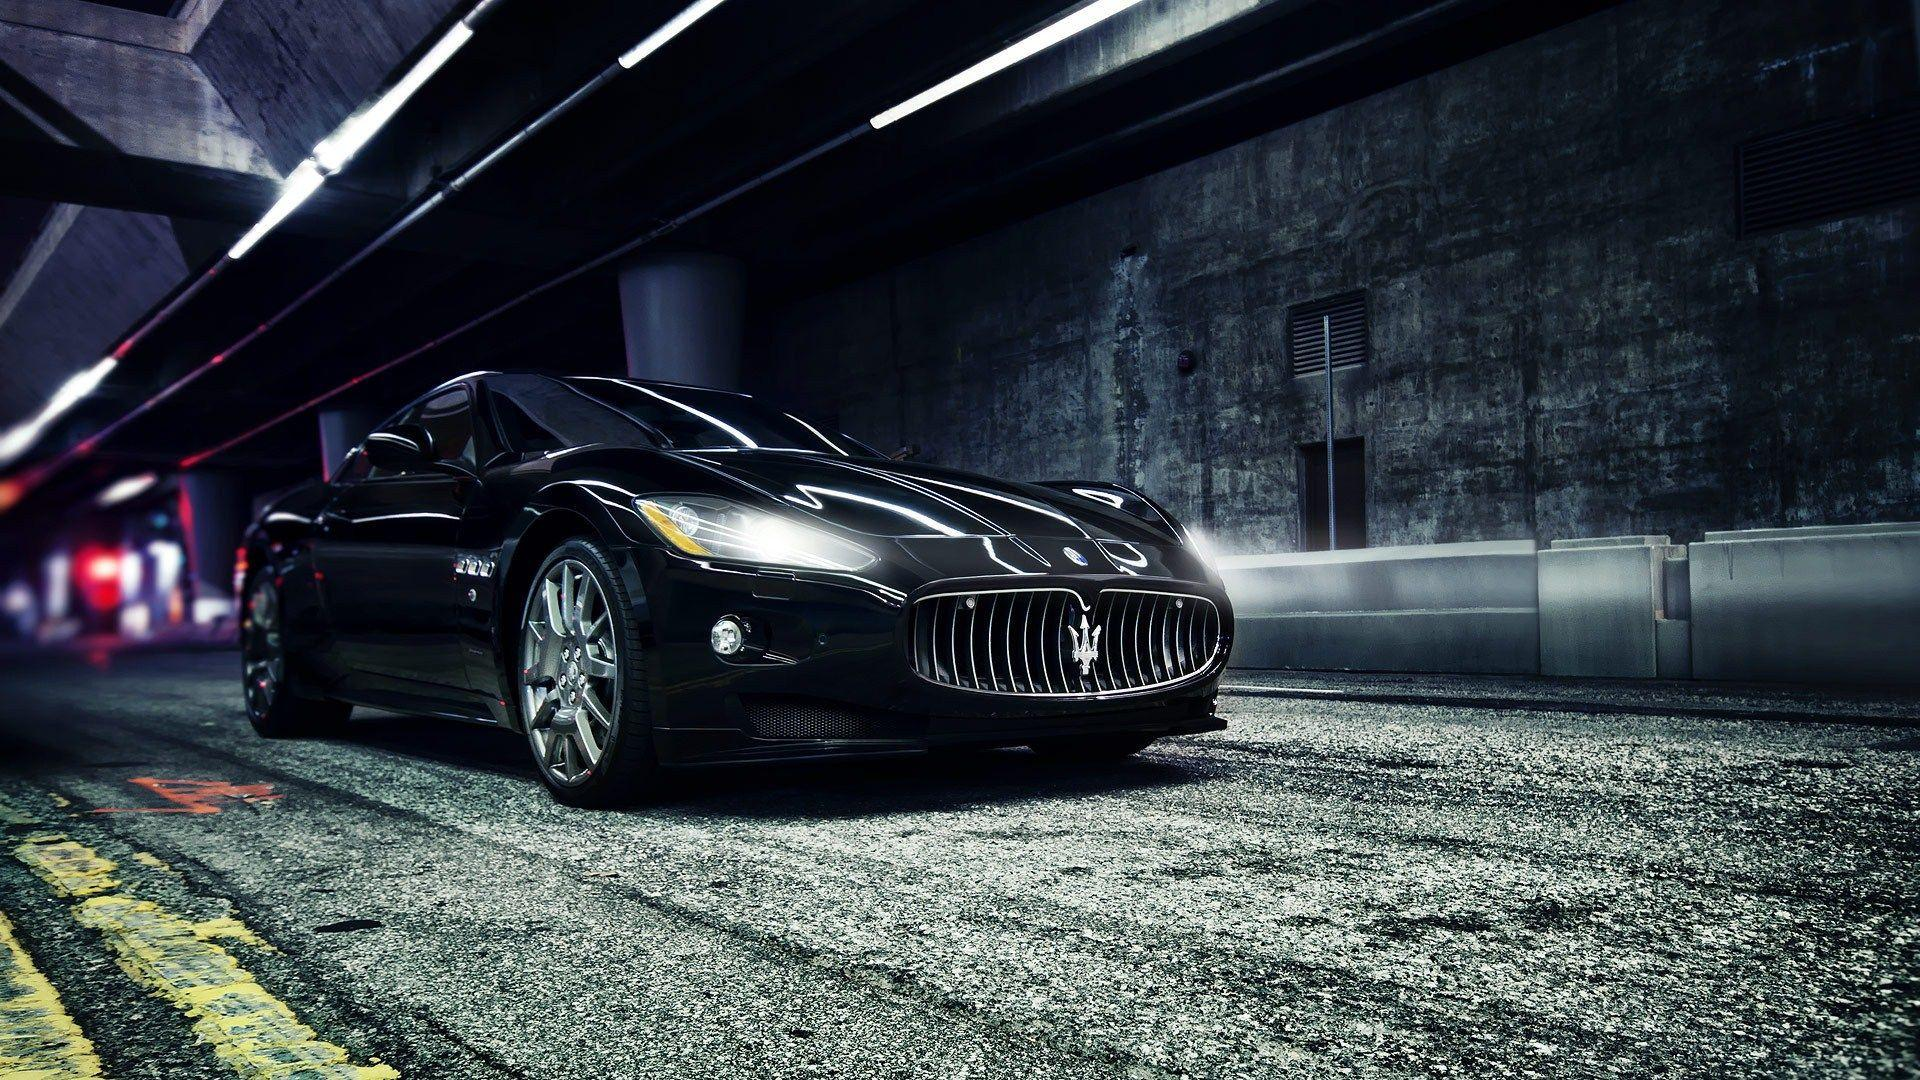 Facts about the Maserati Granturismo | Wallpapers For Desktop ...